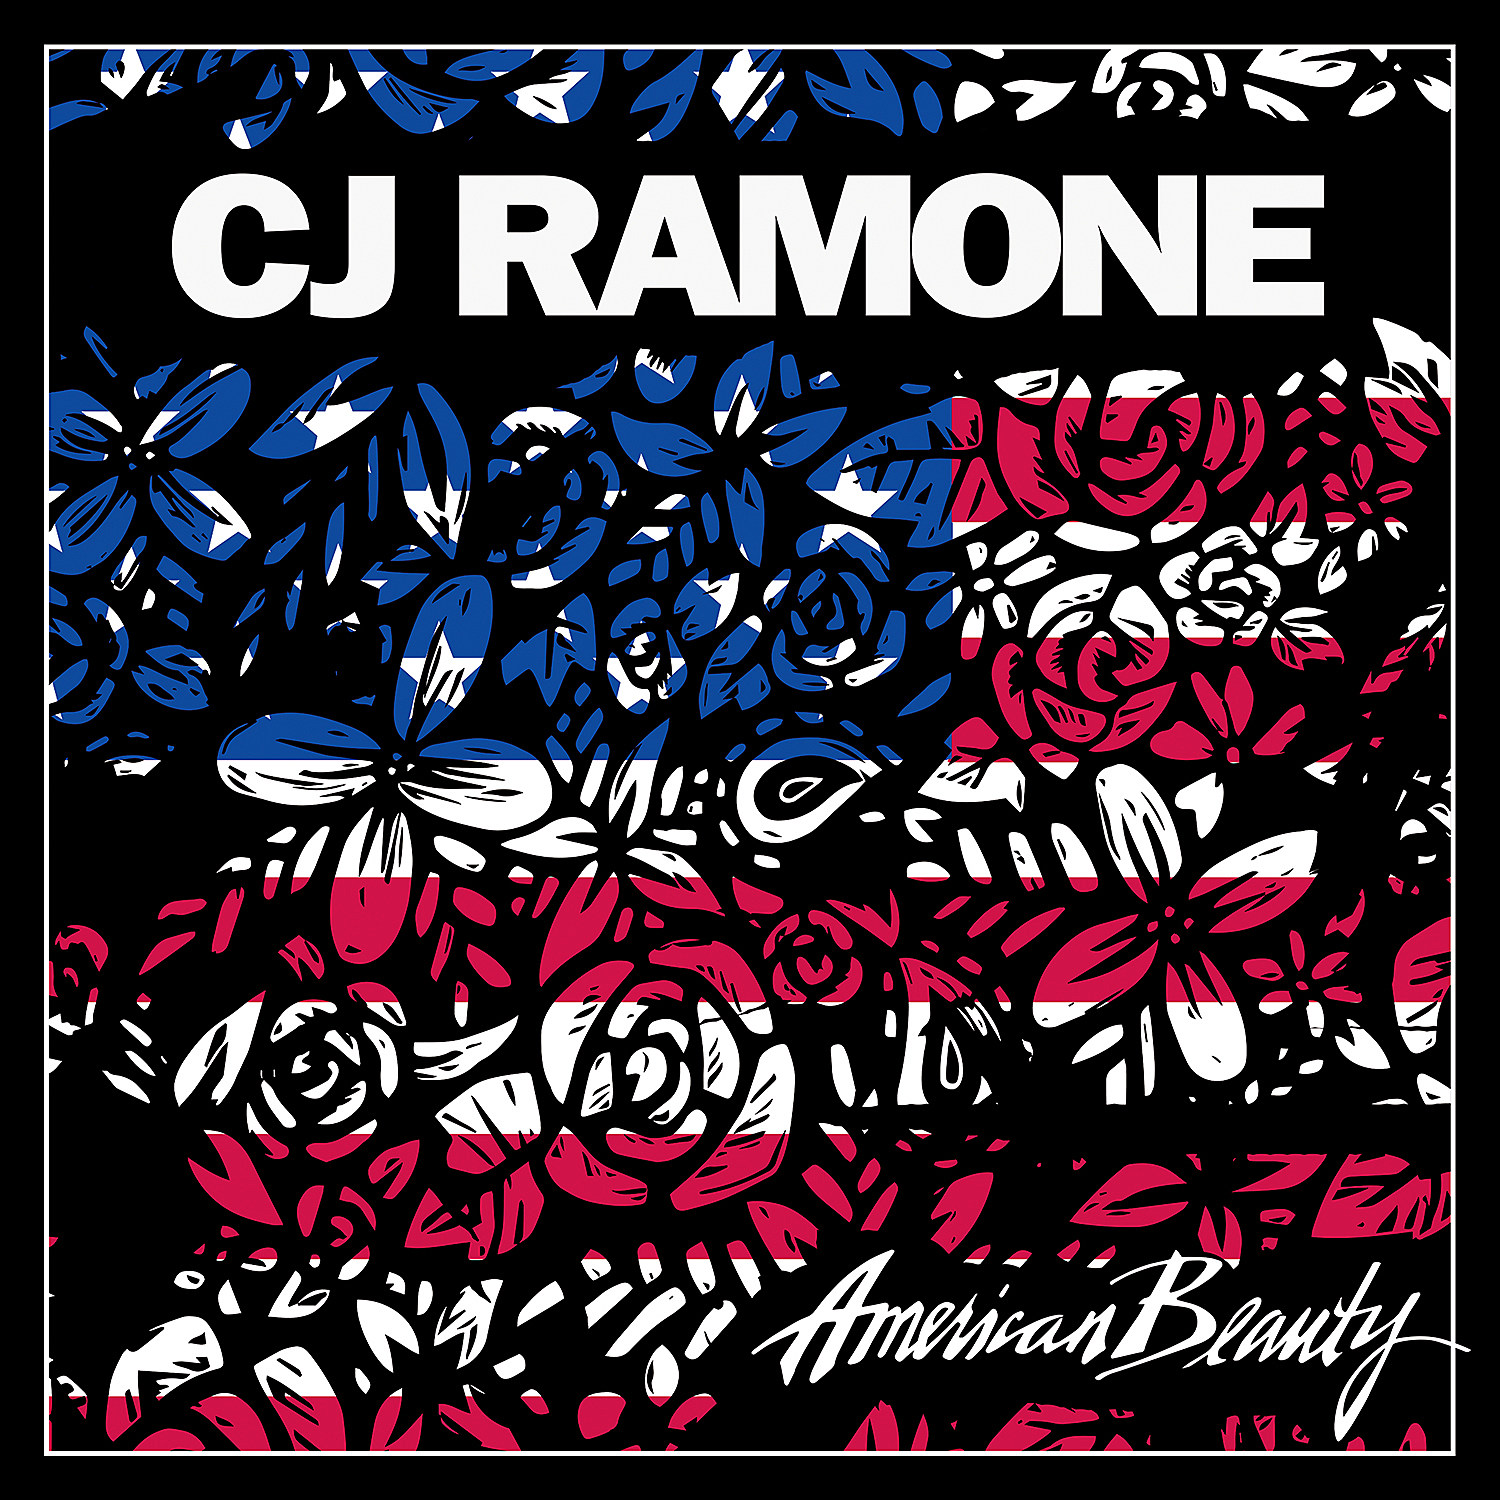 CJ Ramone American Beauty